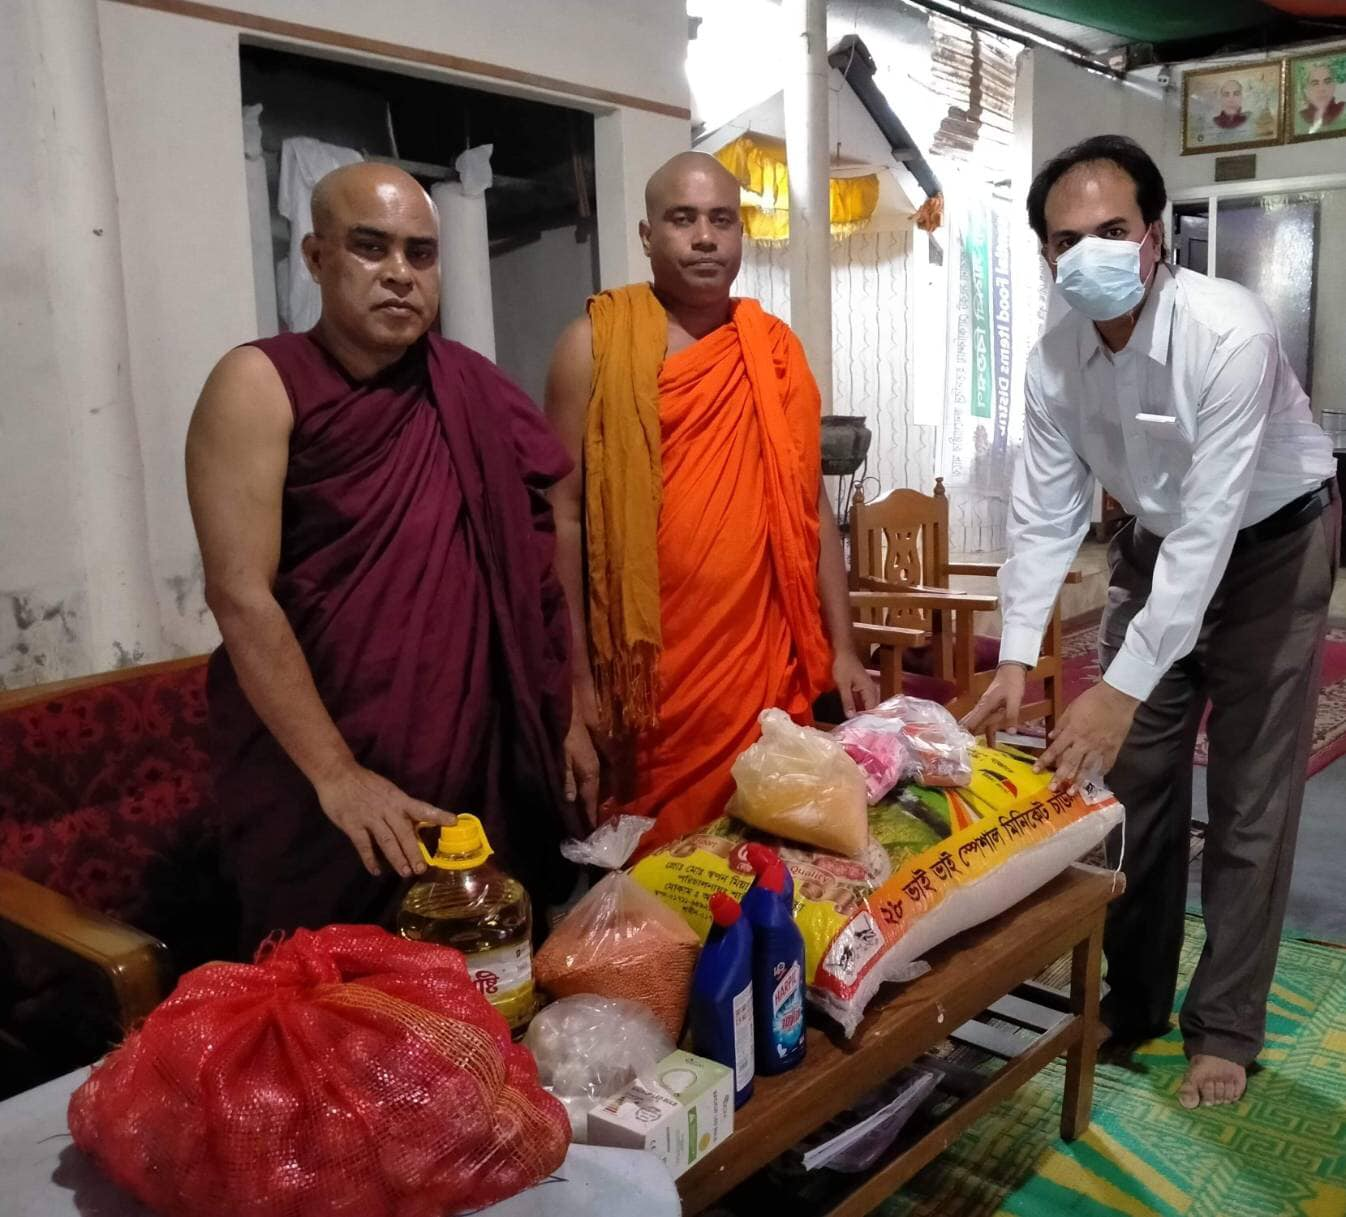 Dr. Sabuj Barua Vice President of World Alliance of Buddhists-WAB, offered some necessities to Temple